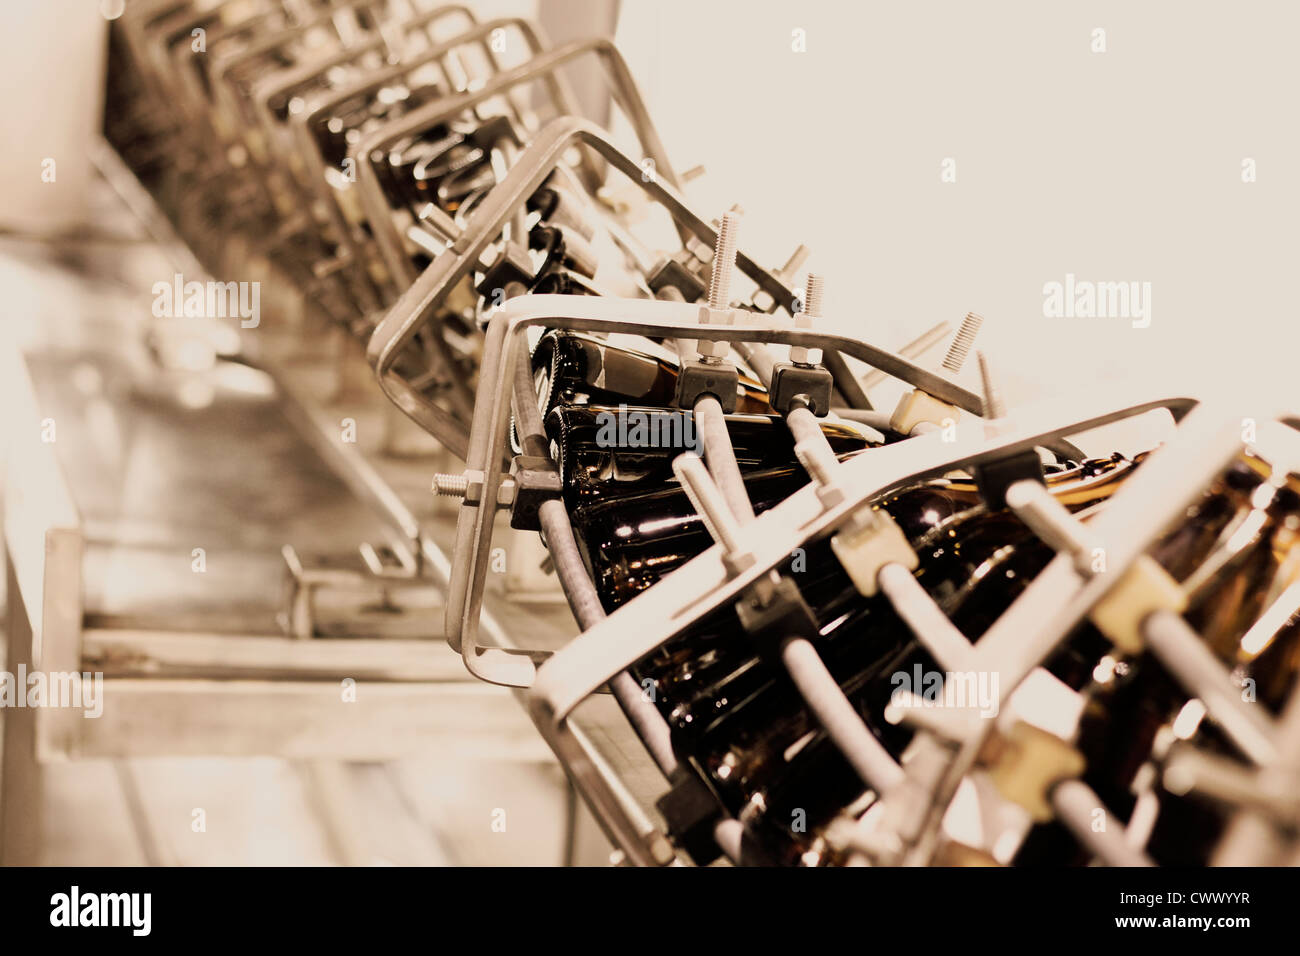 Old amber glass bottling line. - Stock Image